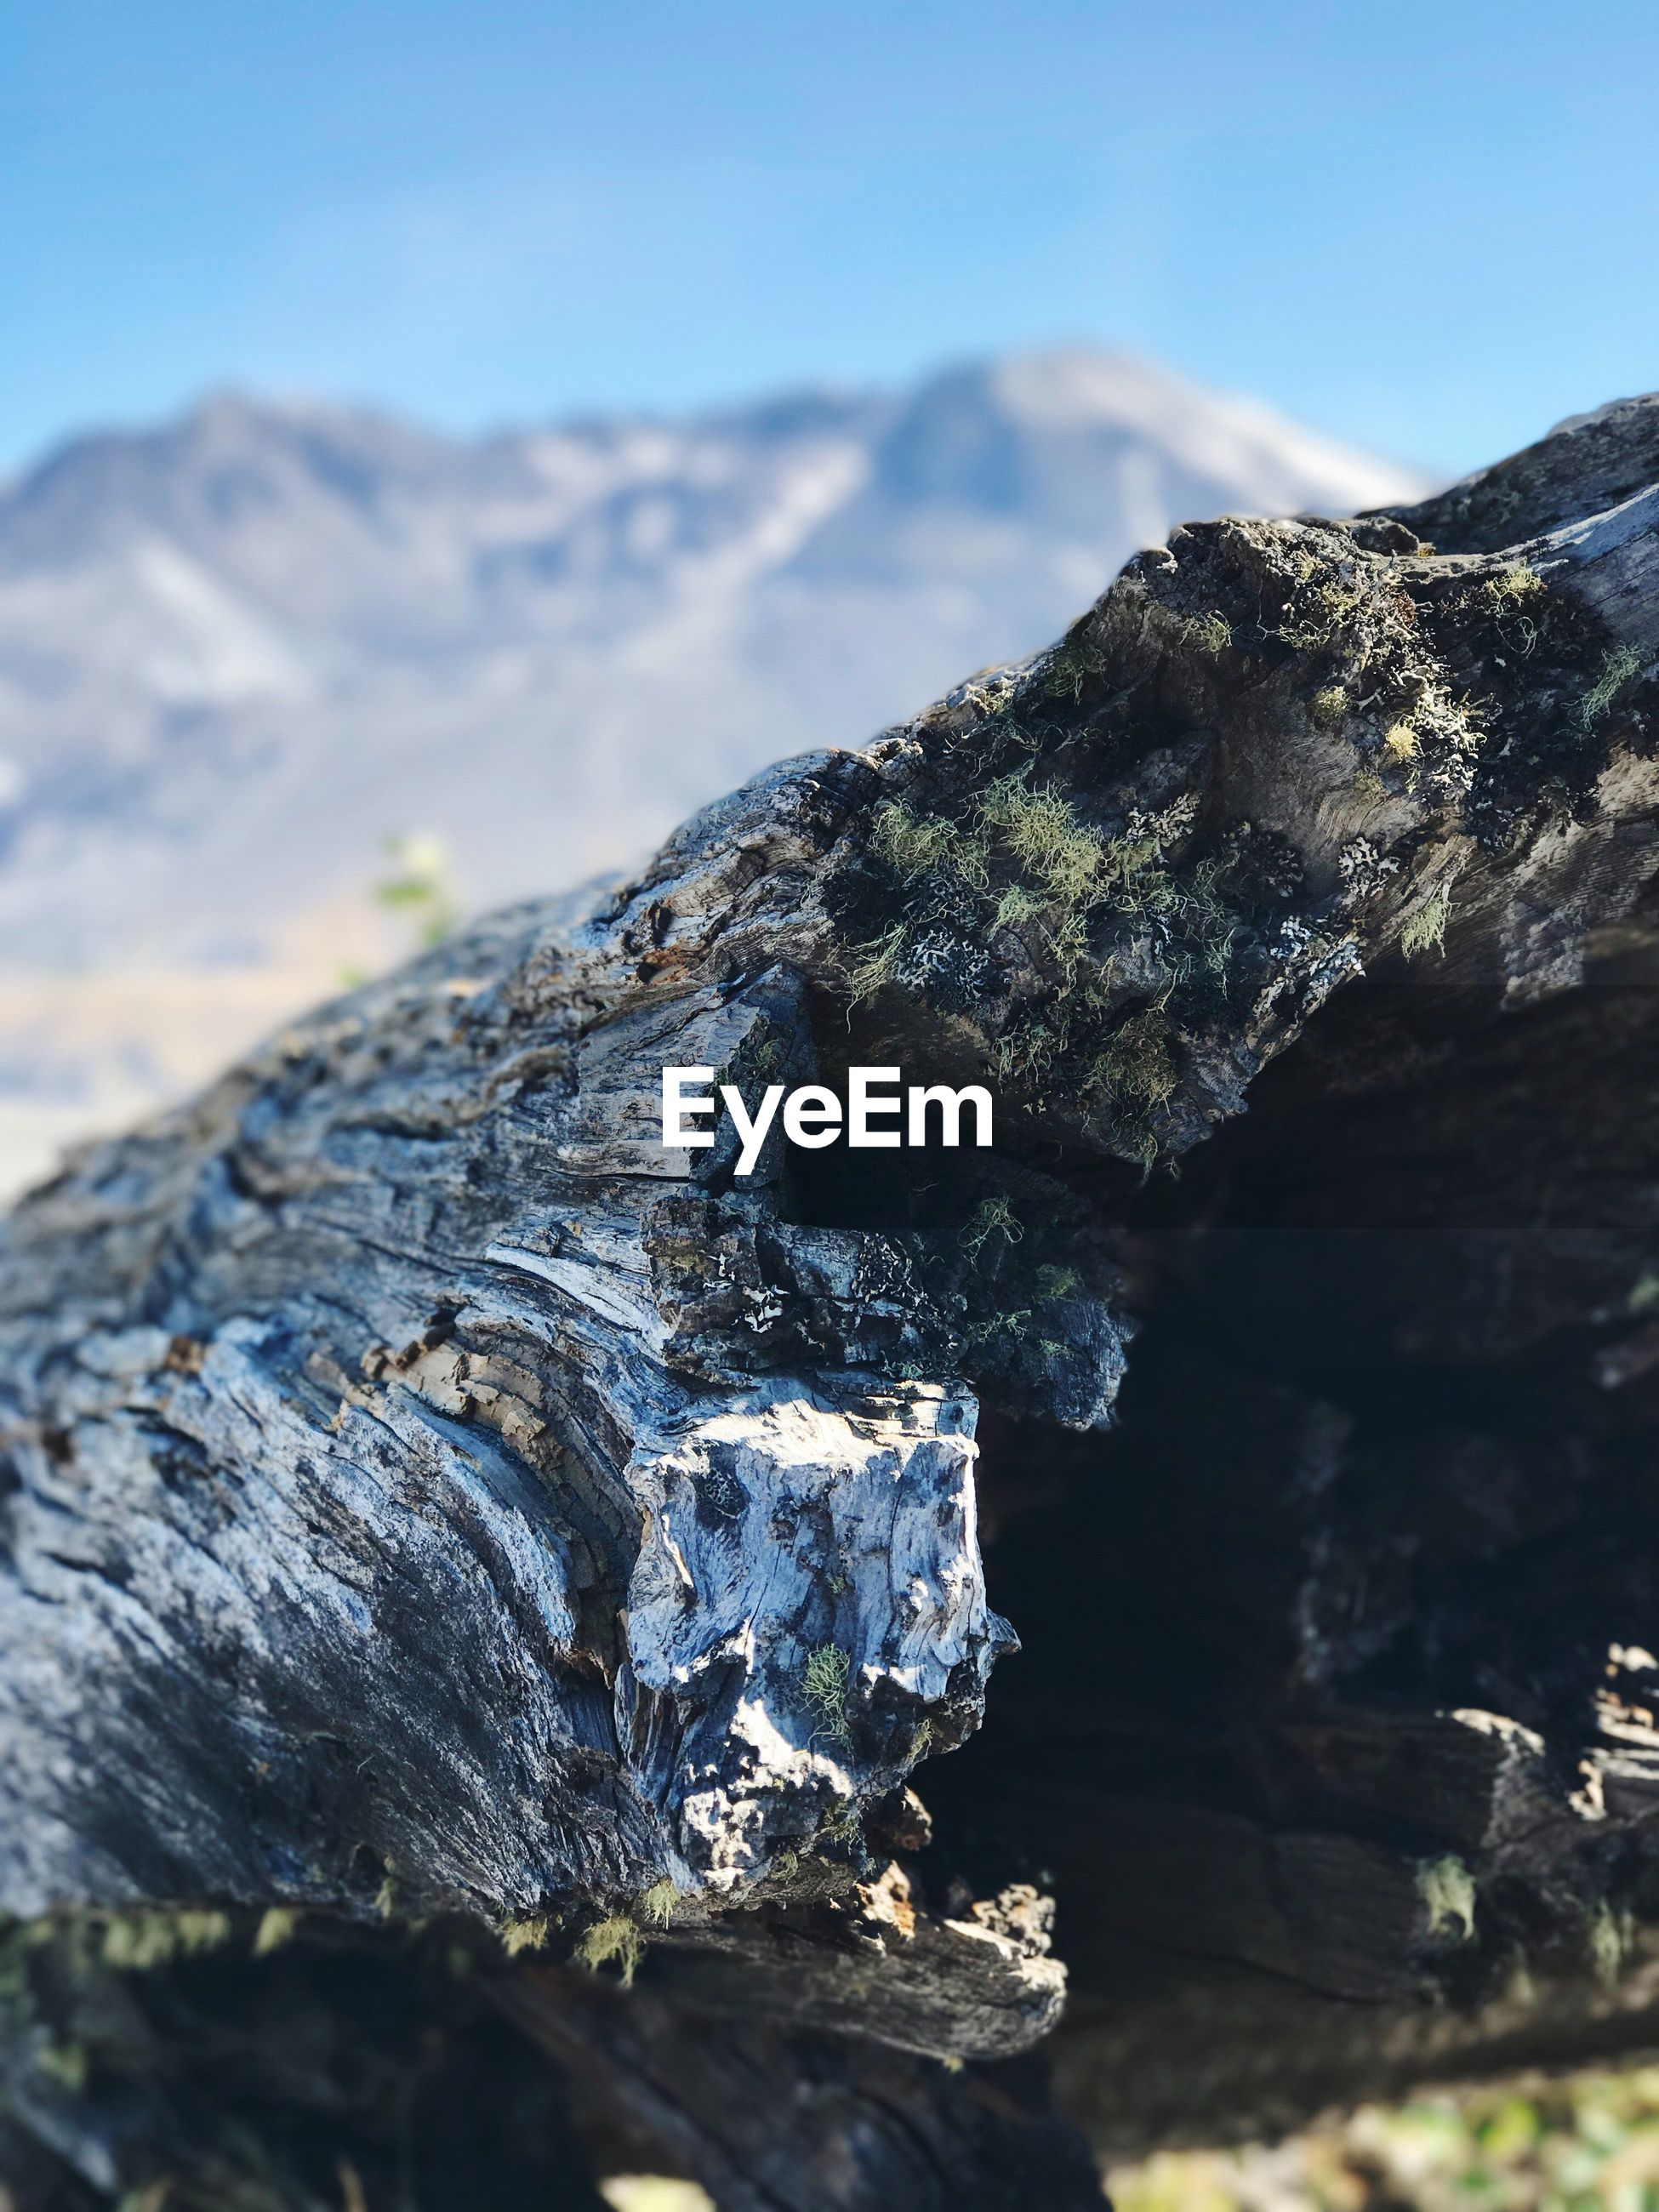 CLOSE-UP OF ROCKS AGAINST MOUNTAIN